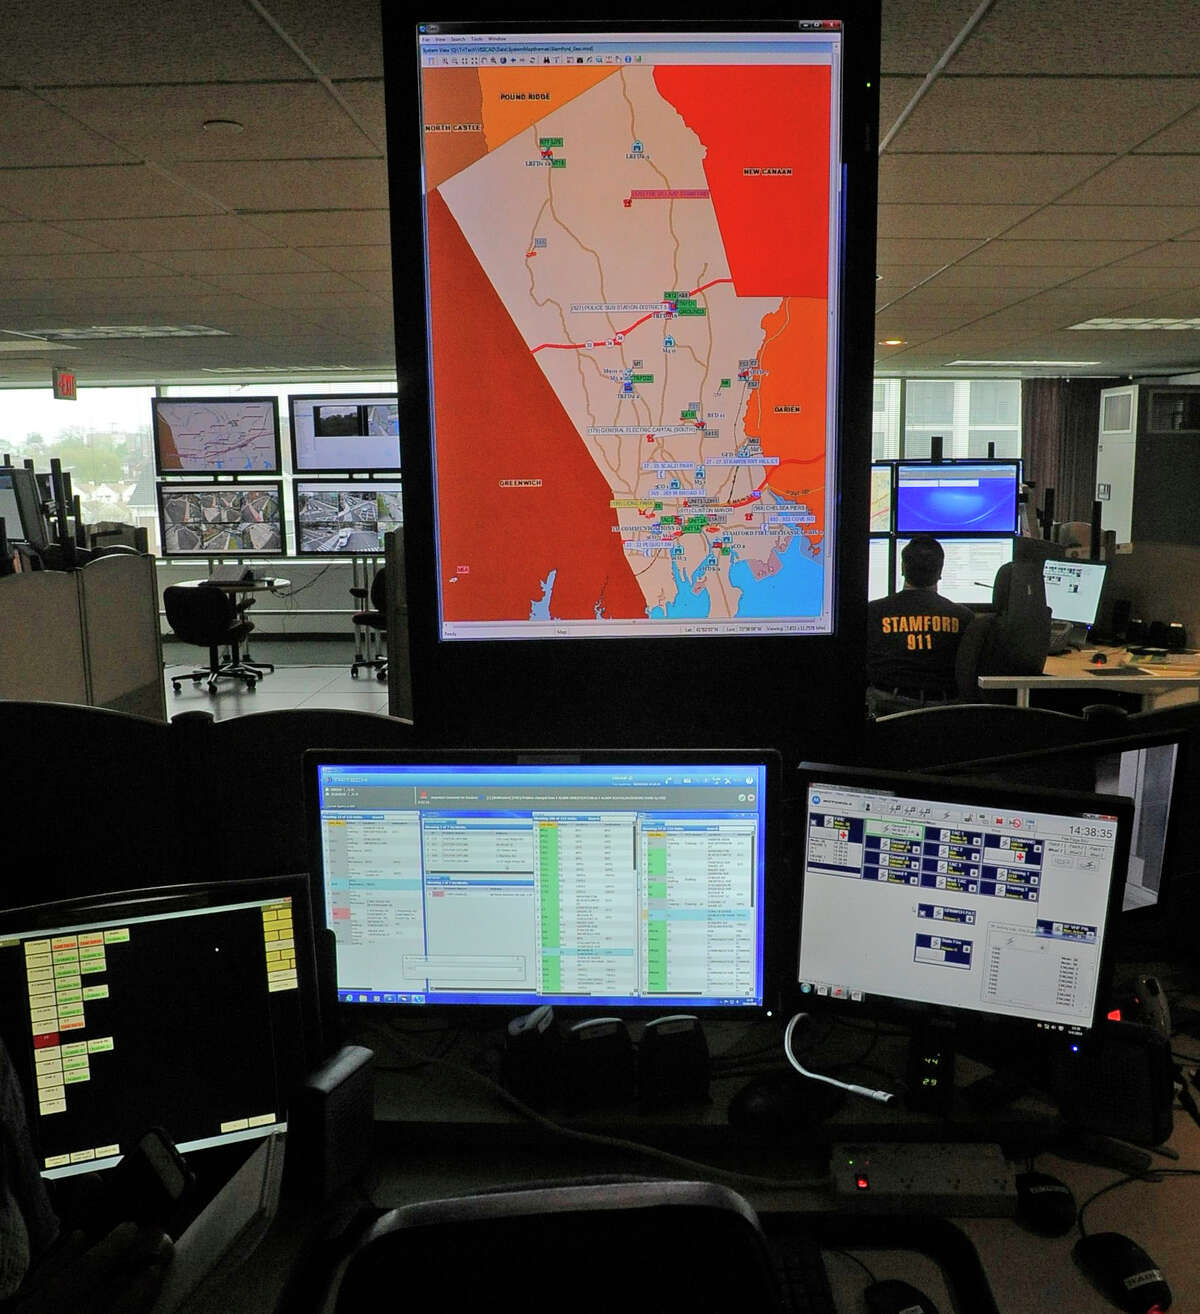 Stamford Emergency officials reveal the new Emergency 911 Communications system installed at the Emergency Operations Center & 911 Communications Center, on the 6th Floor of the Government Center on May 4, 2016.